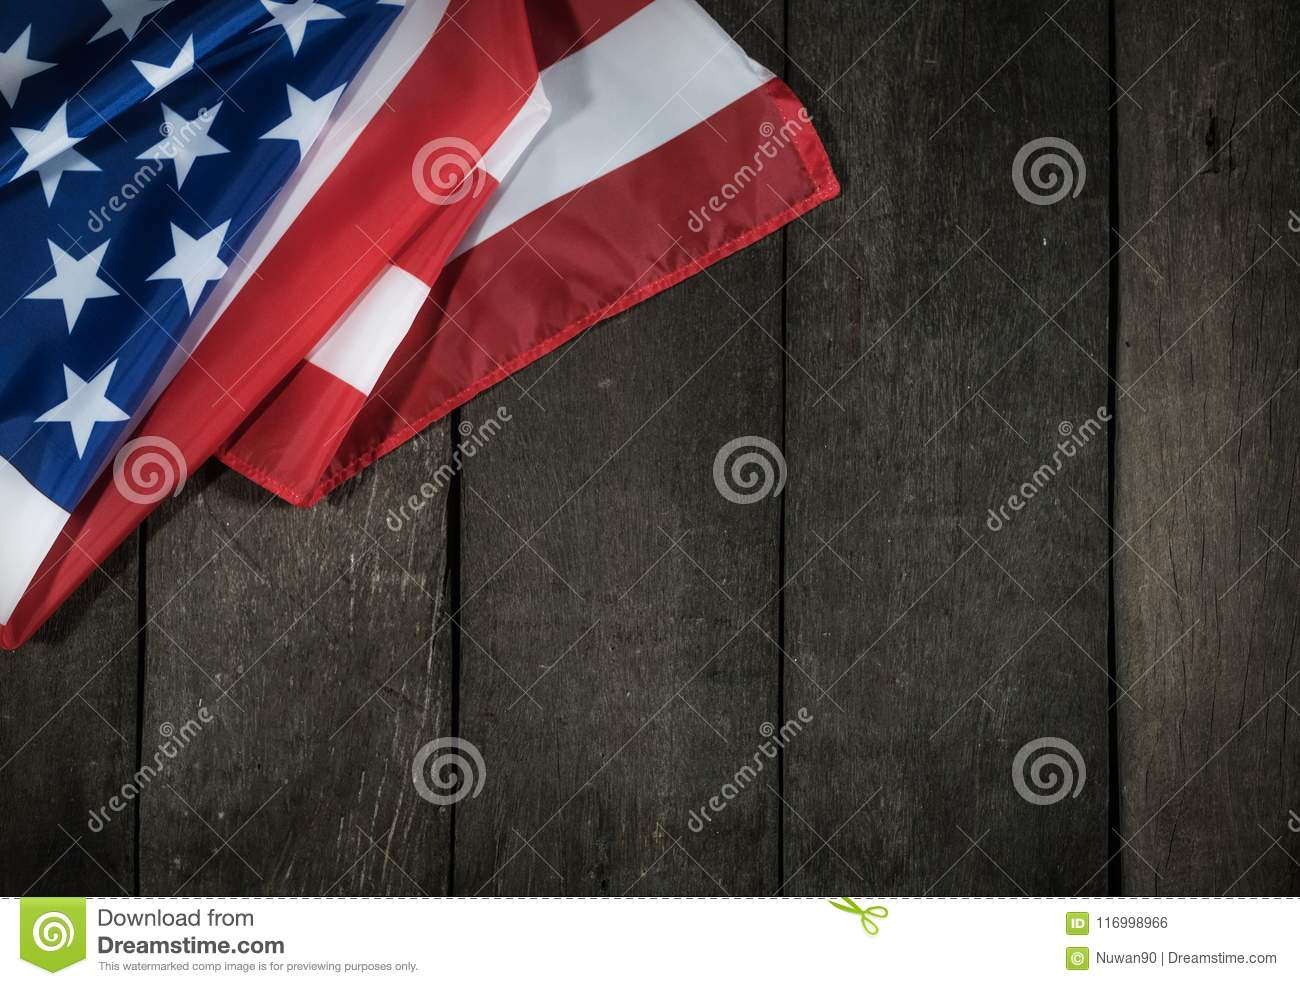 American flag on wood background for Memorial Day or 4th of July